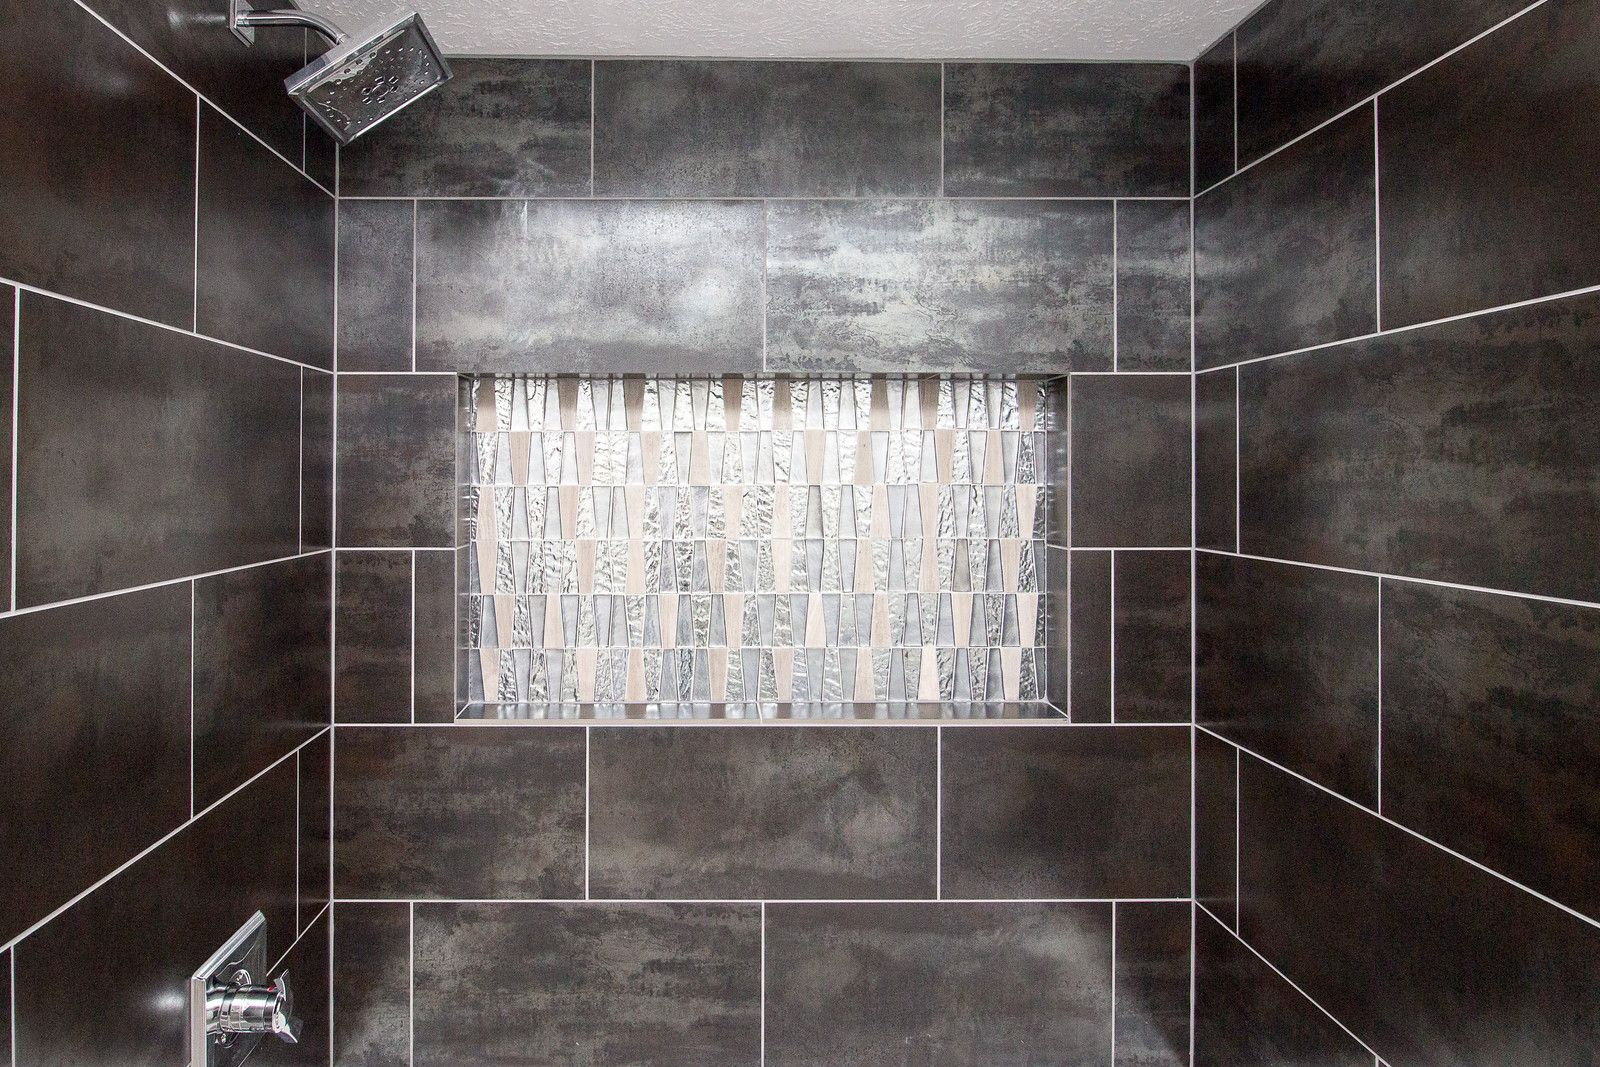 #MosaicMonday highlights a GORGEOUS installation by @Griffin Construction out of Houston, Texas, using our Alchemy Series in Silver and Imagine Mosaic! #mosaic #Monday #texas #southern #living #houston #tx #hou #alchemy #silver #imagine #motivationmonday #homedecor #interiordesign #design #home #DIY #bathroom #walltile #decor #decorative #glass #stone #metal #porcelain